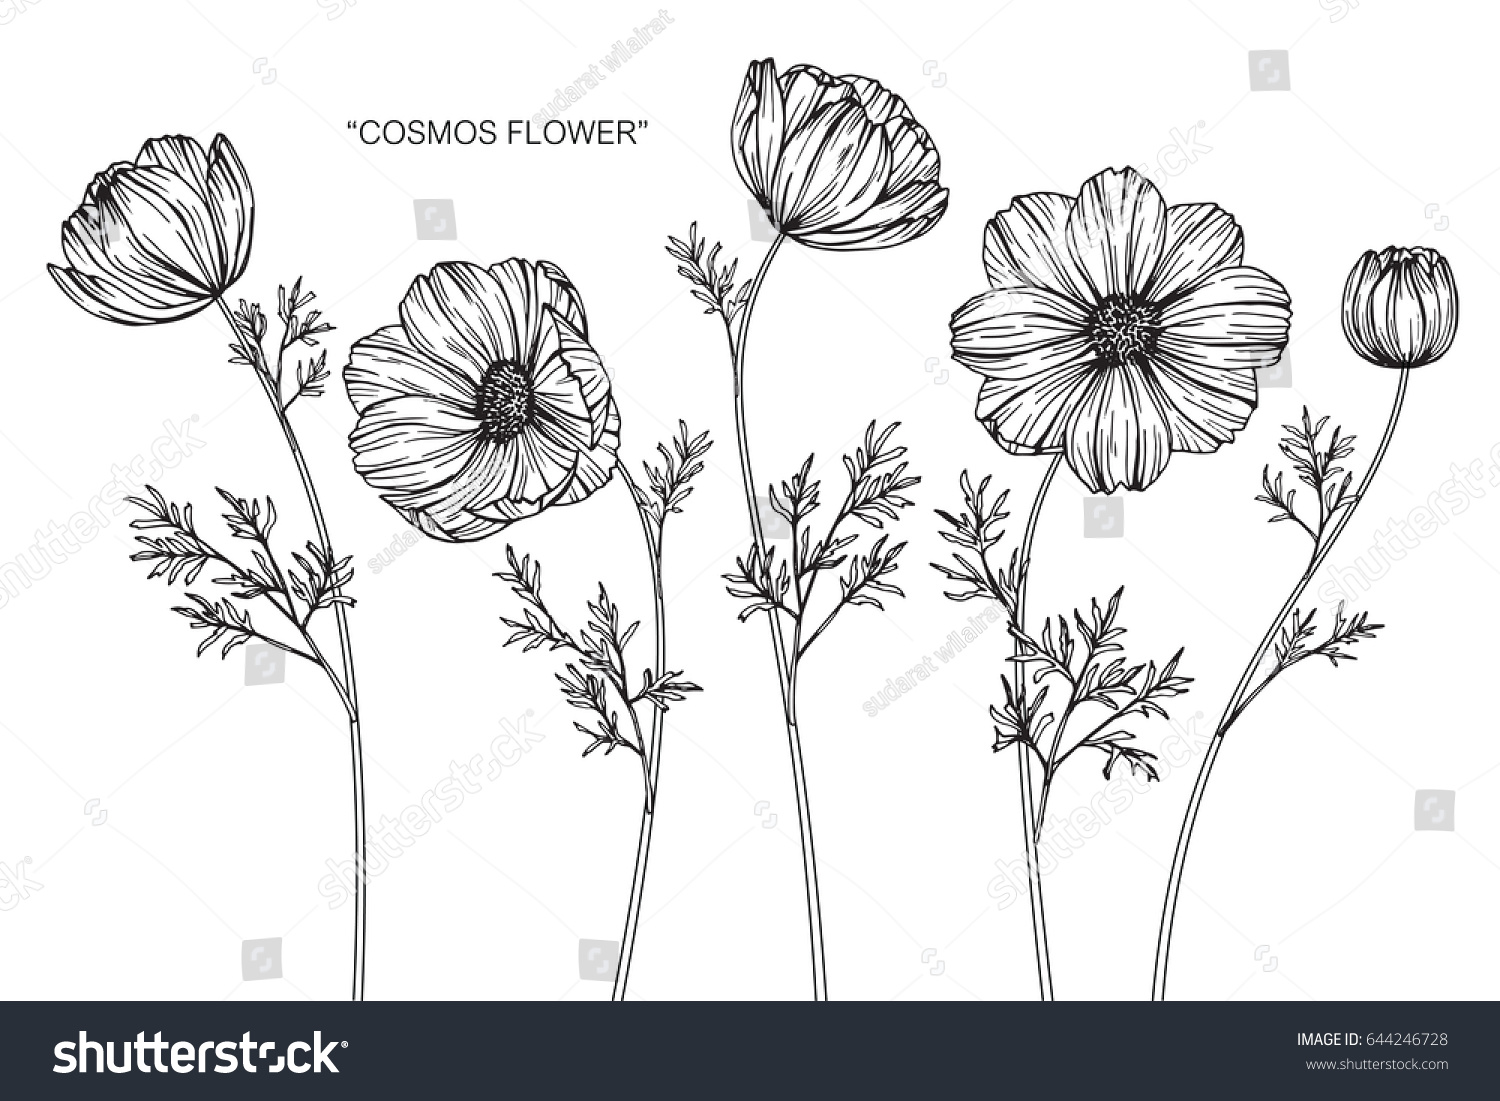 Cosmos Flowers Drawing Sketch Lineart On Stock Vector